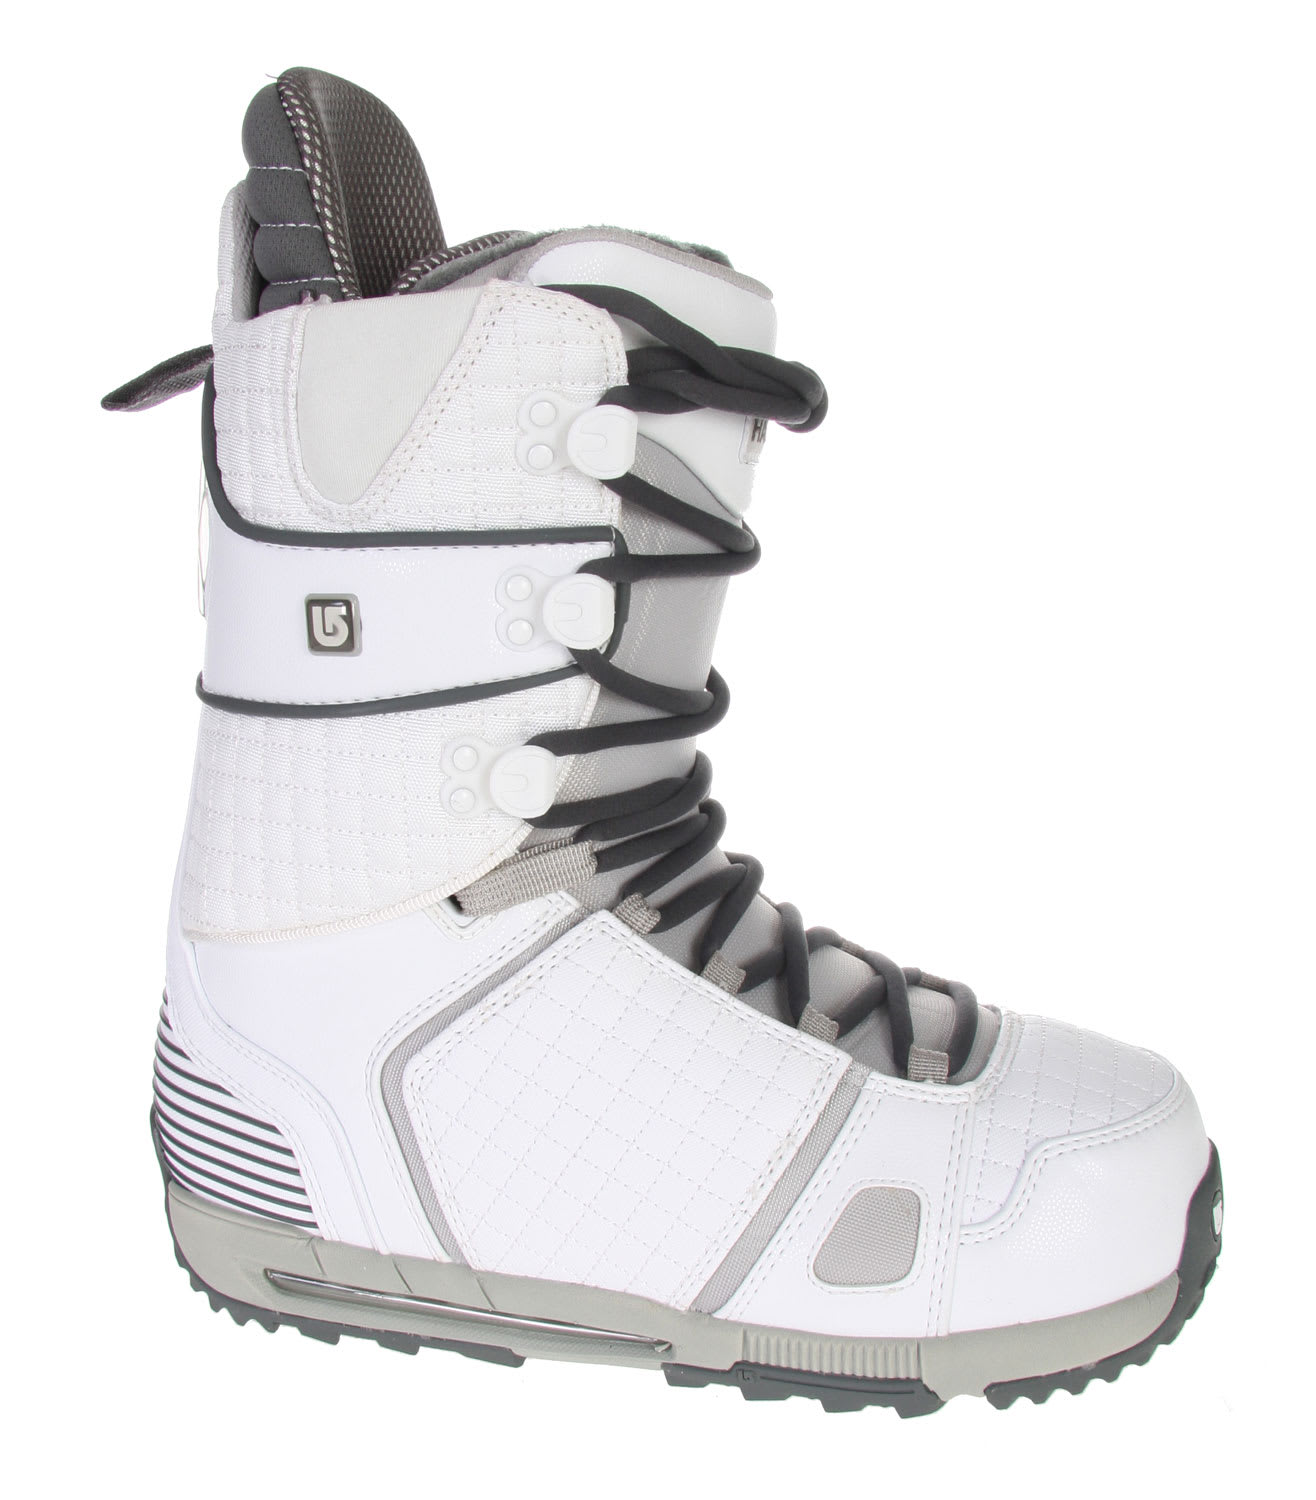 Shop for Burton Hail Snowboard Boots White/Lt - Men's